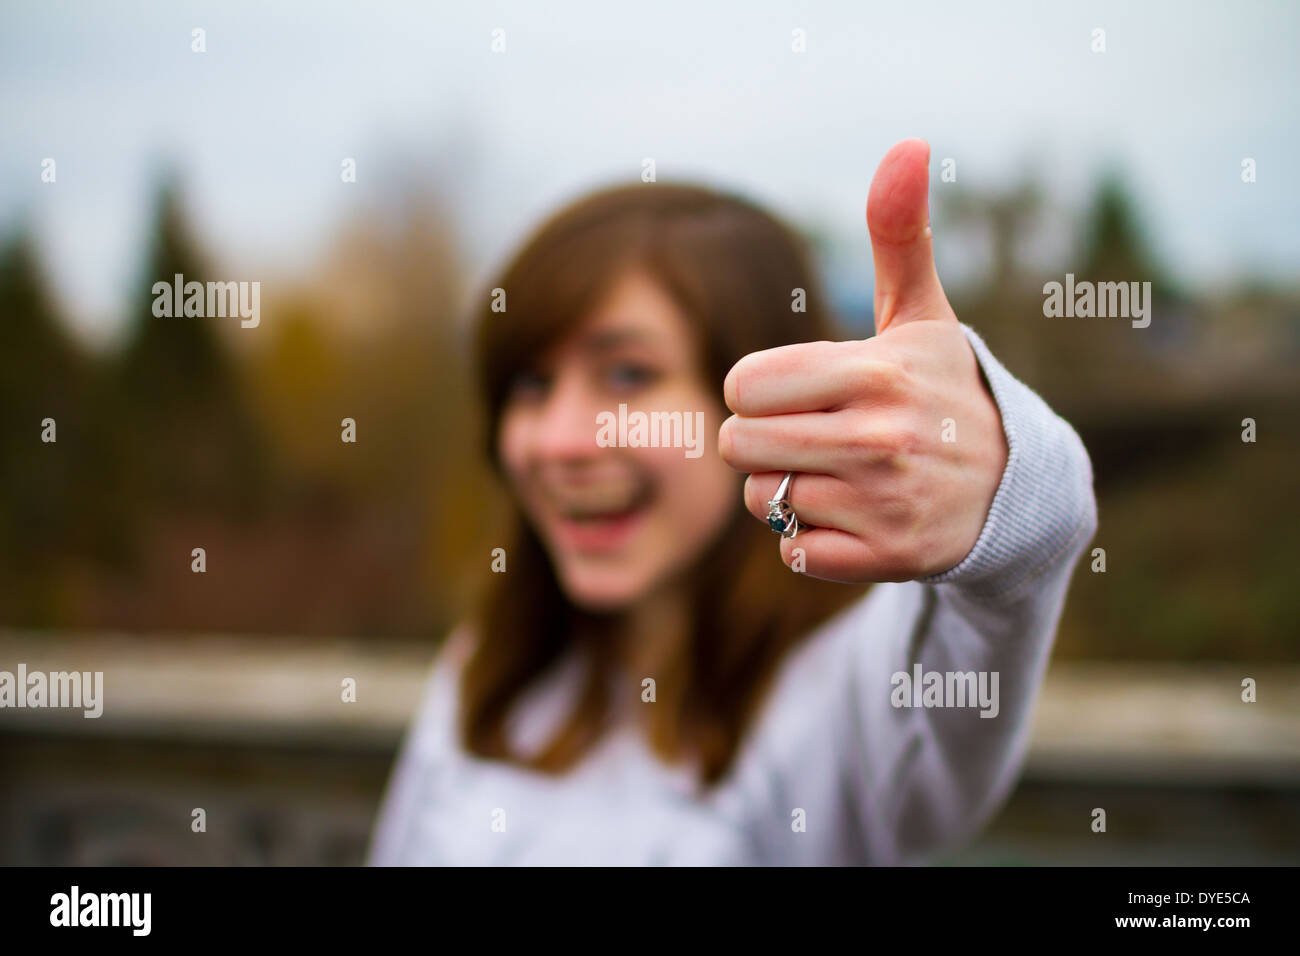 Beautiful girl doing a thumbs up sign with her hand and fingers for this unique approval image. - Stock Image